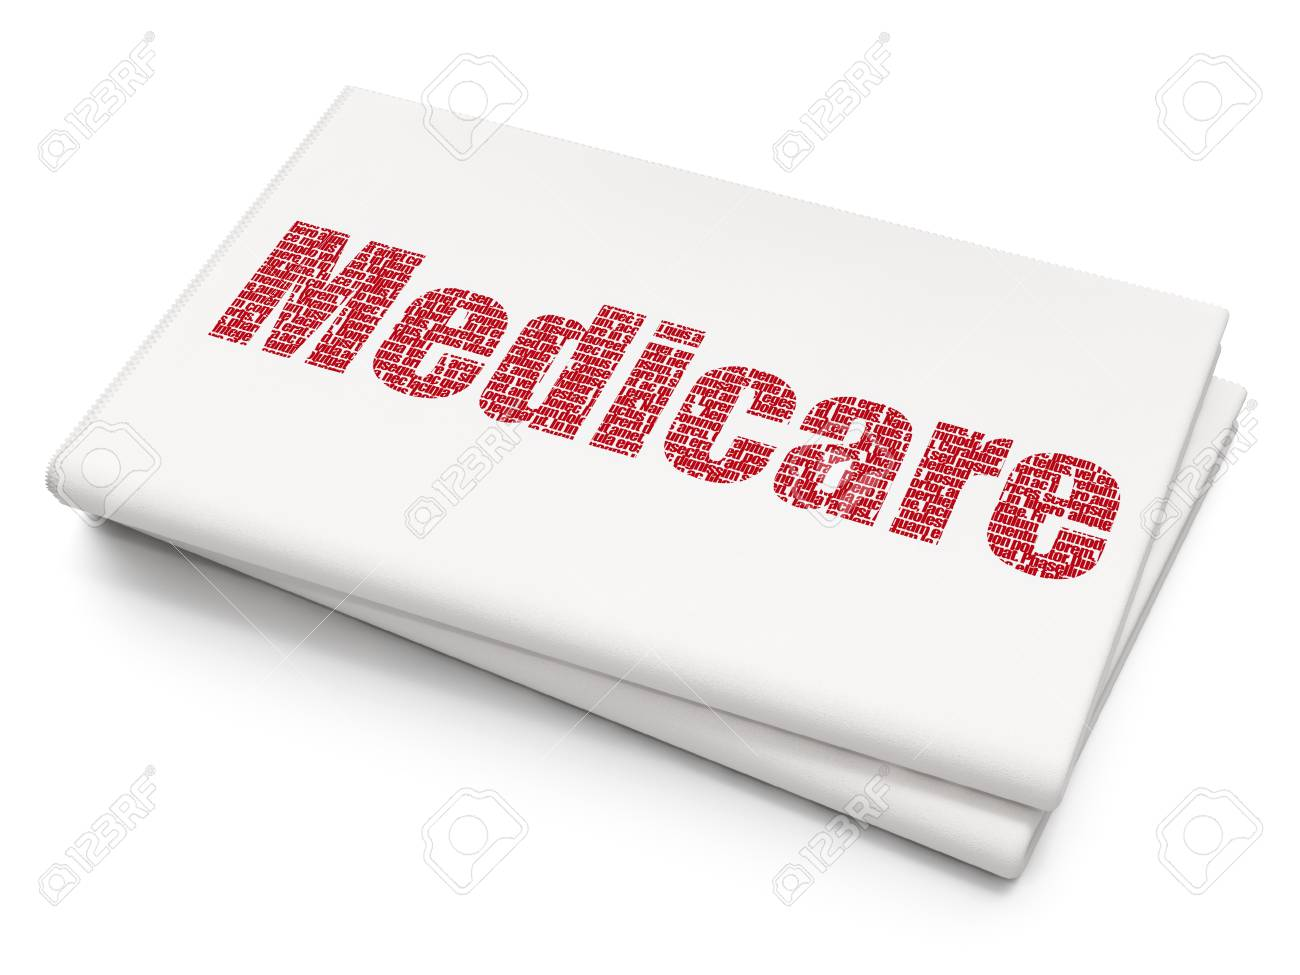 Medicine Concept Pixelated Red Text Medicare On Blank Newspaper